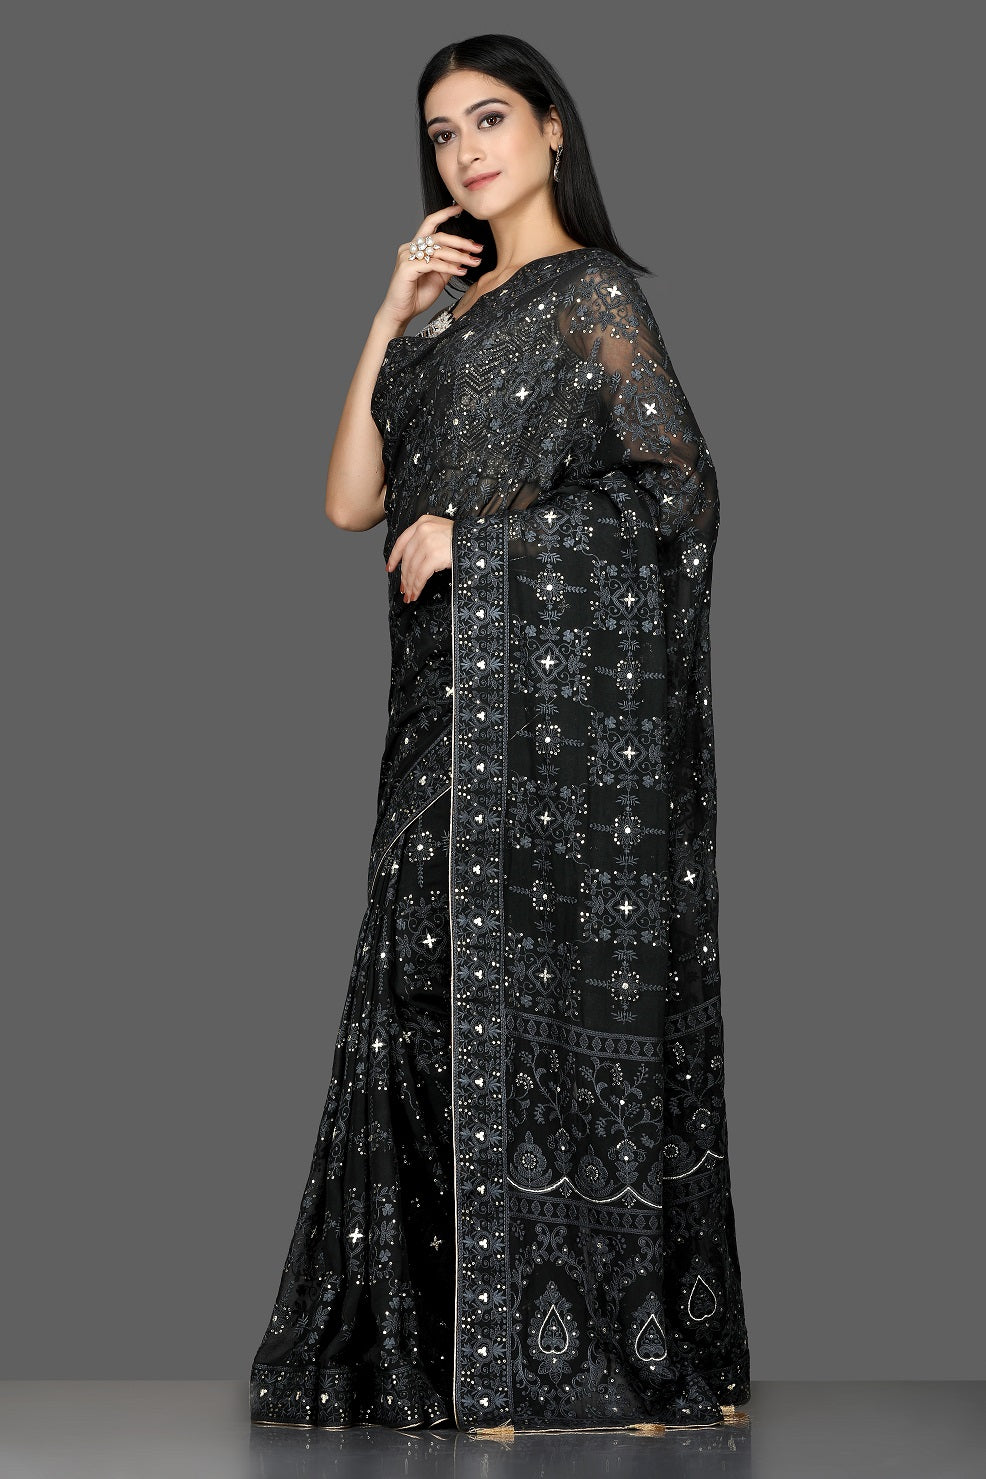 Buy black Lucknowi georgette saree online in USA with embroidered sari blouse. Shine at weddings and special occasions with beautiful embroidered sarees, designer sari with blouse in USA from Pure Elegance Indian clothing in USA.-side